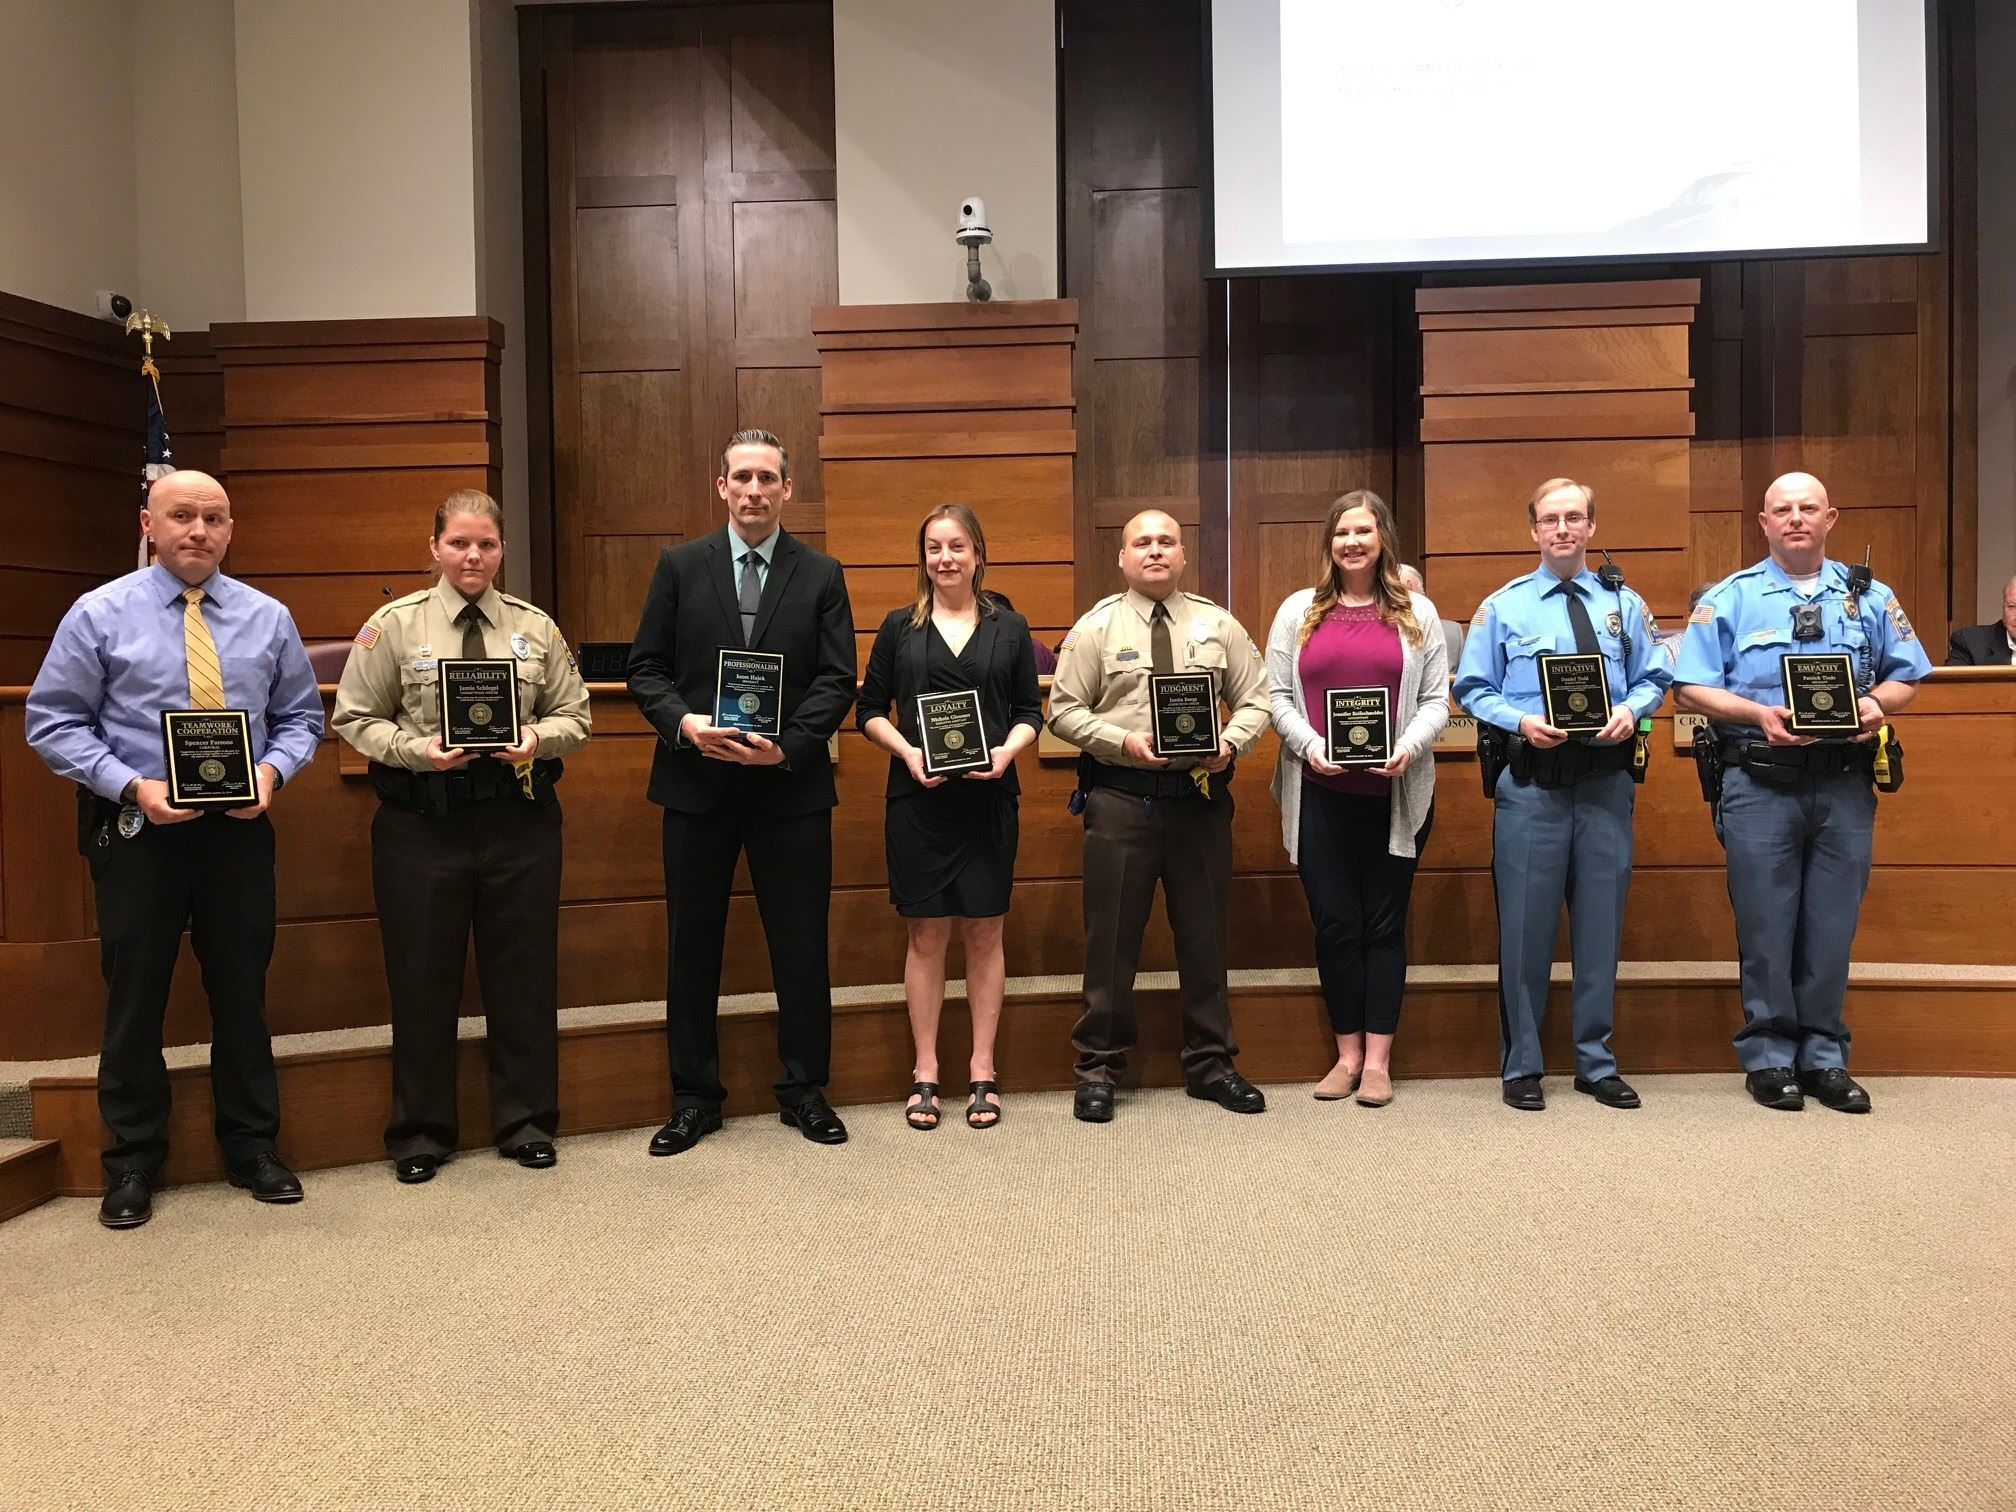 photo of Riley County Police Department employee award recipients